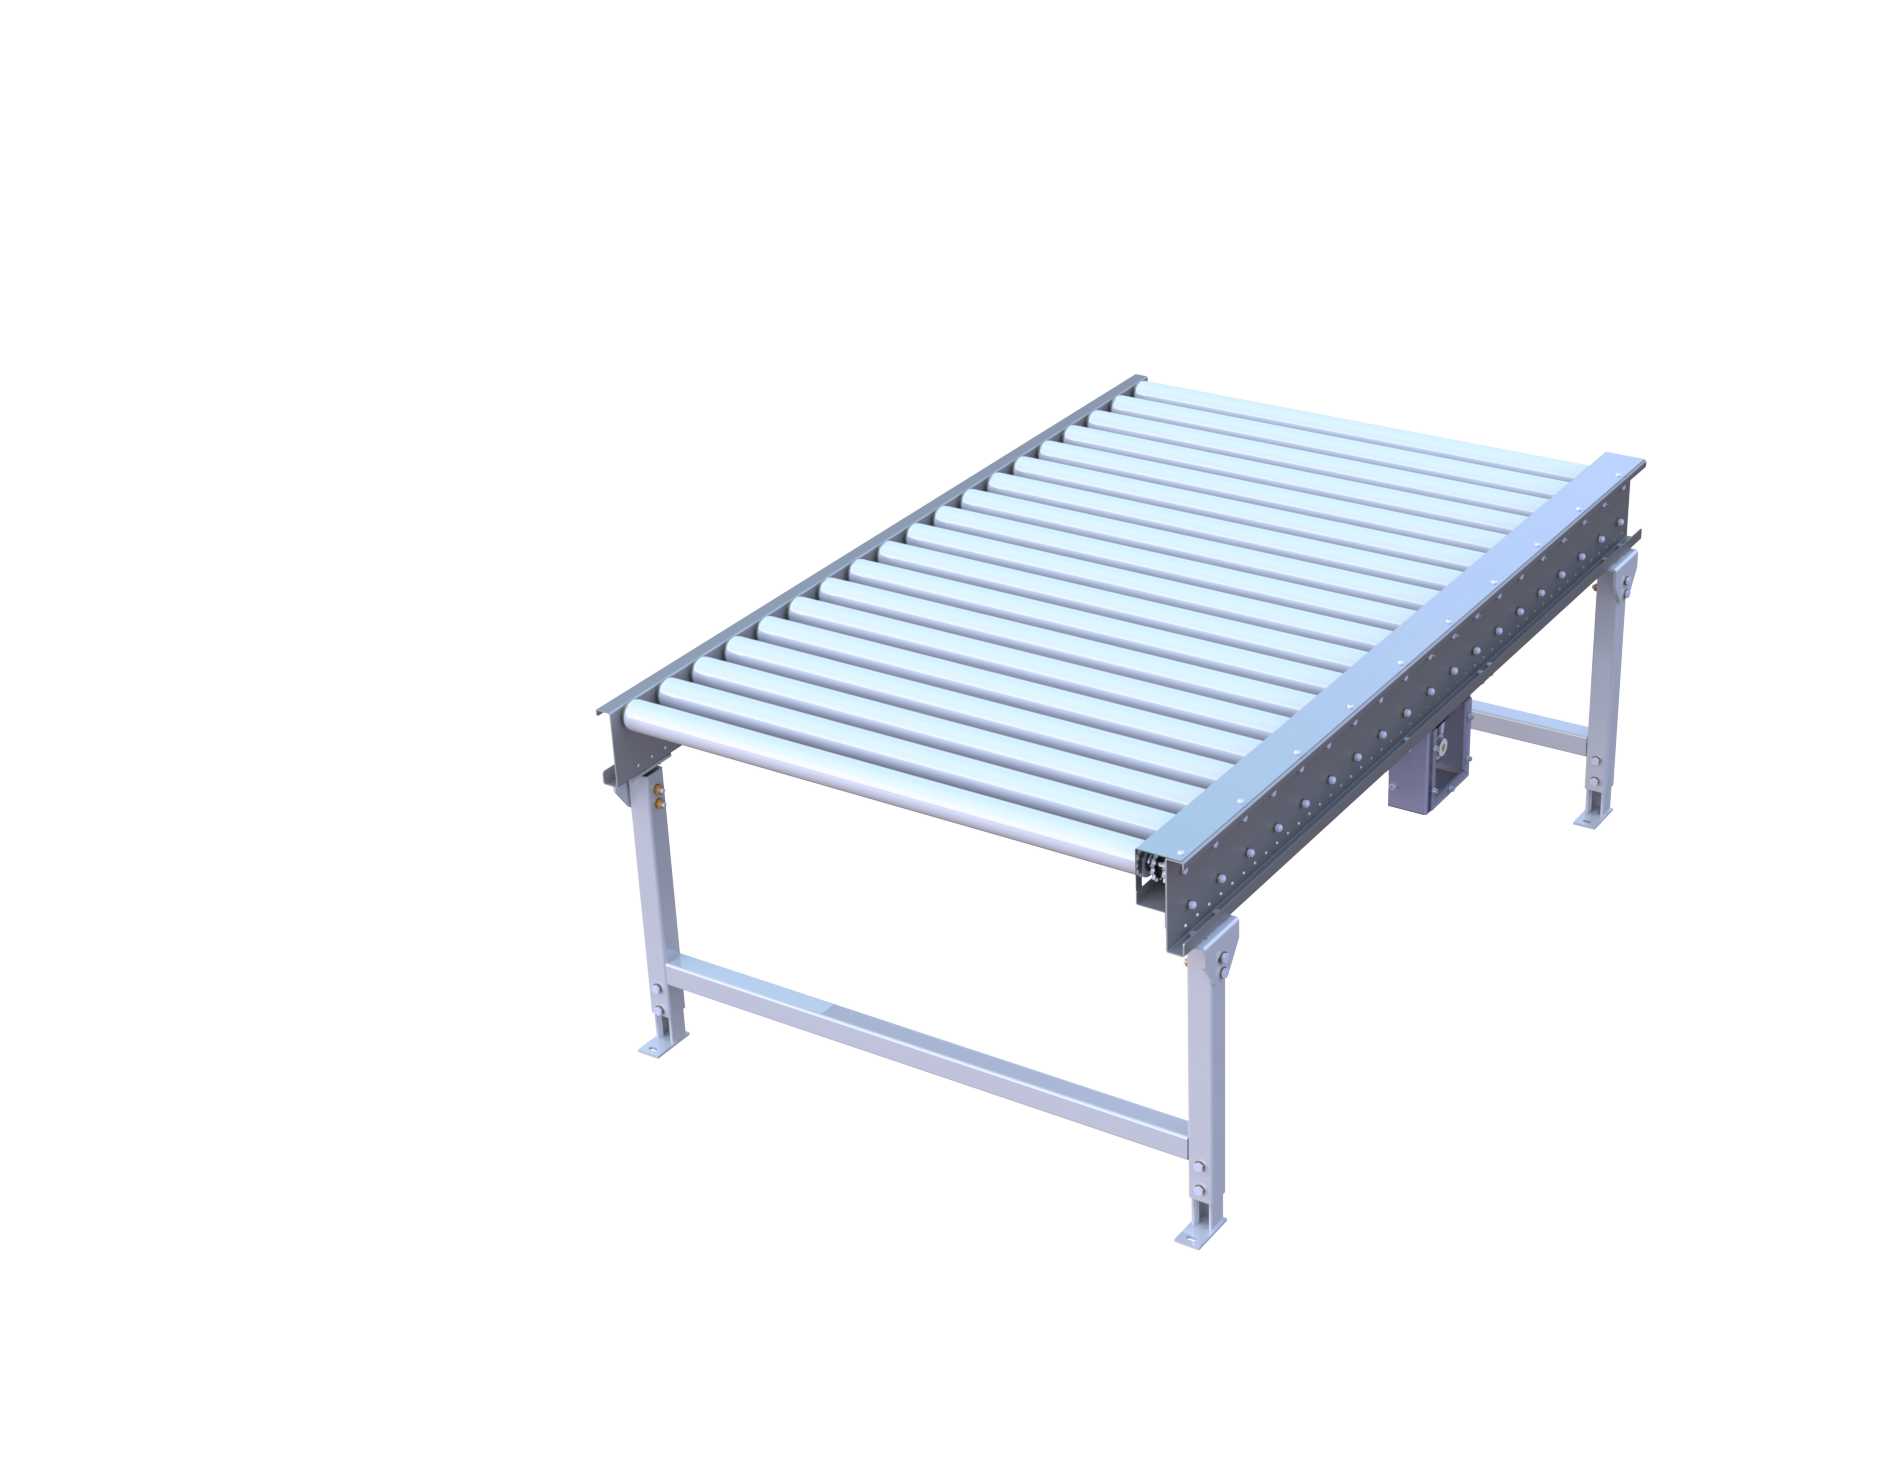 ZRK - Chain Driven Roller Conveyor